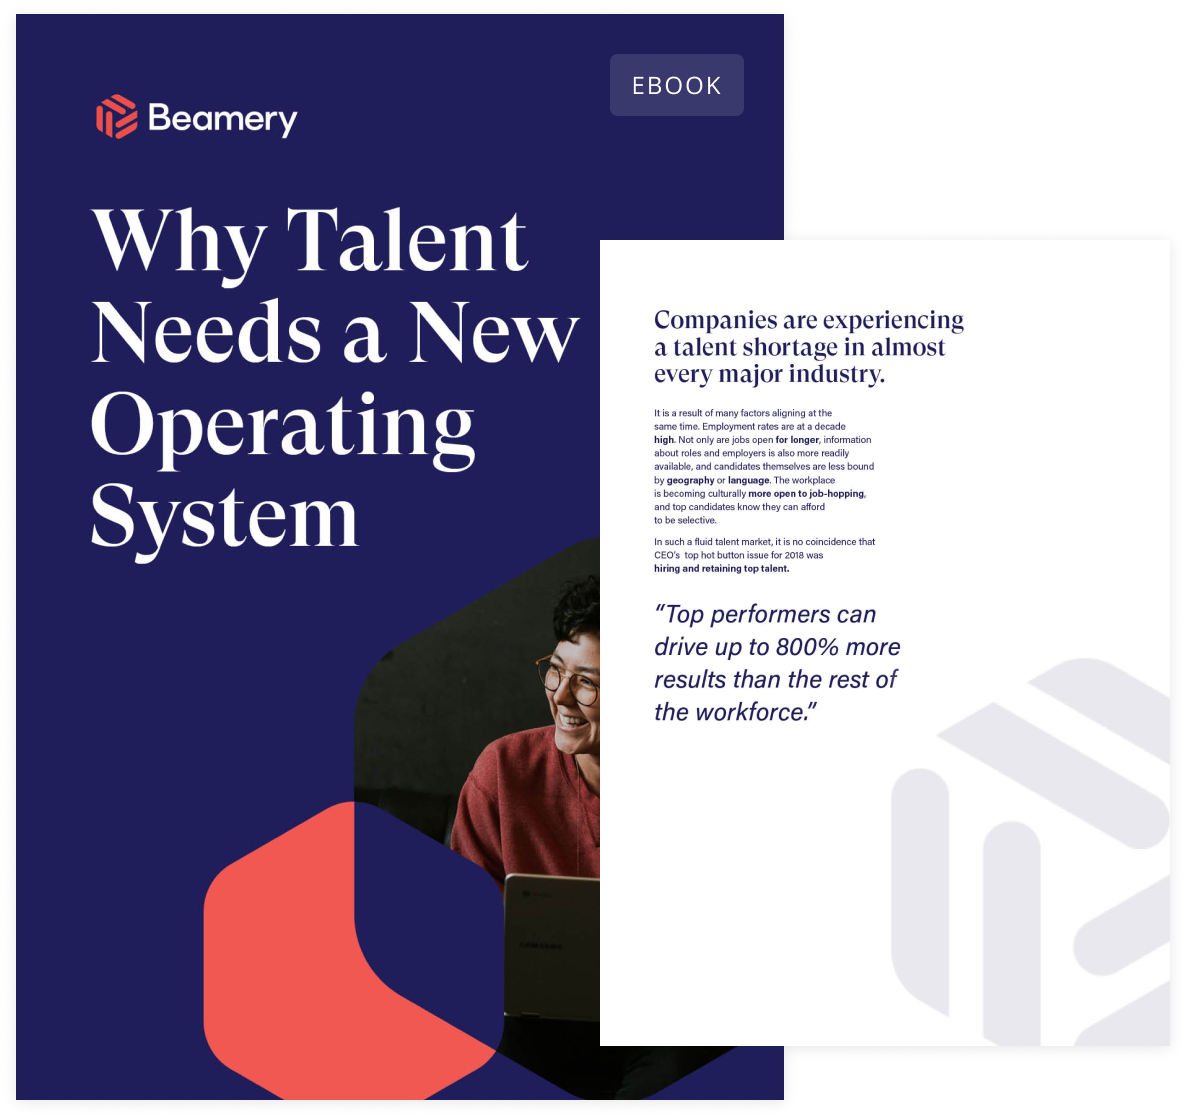 Why Talent Needs a New Operating System